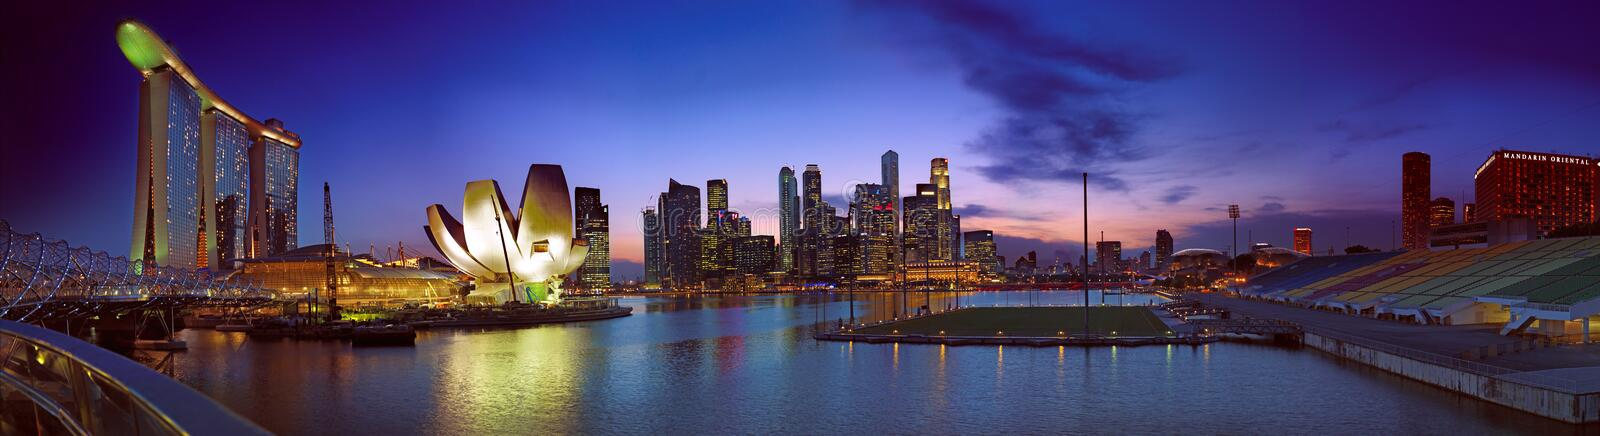 Singapore Twilight Landscape. The economy of Sinagpore has been well into recovery and its growth picking up depsite the gloom of the world. With the new Casinos royalty free stock photo